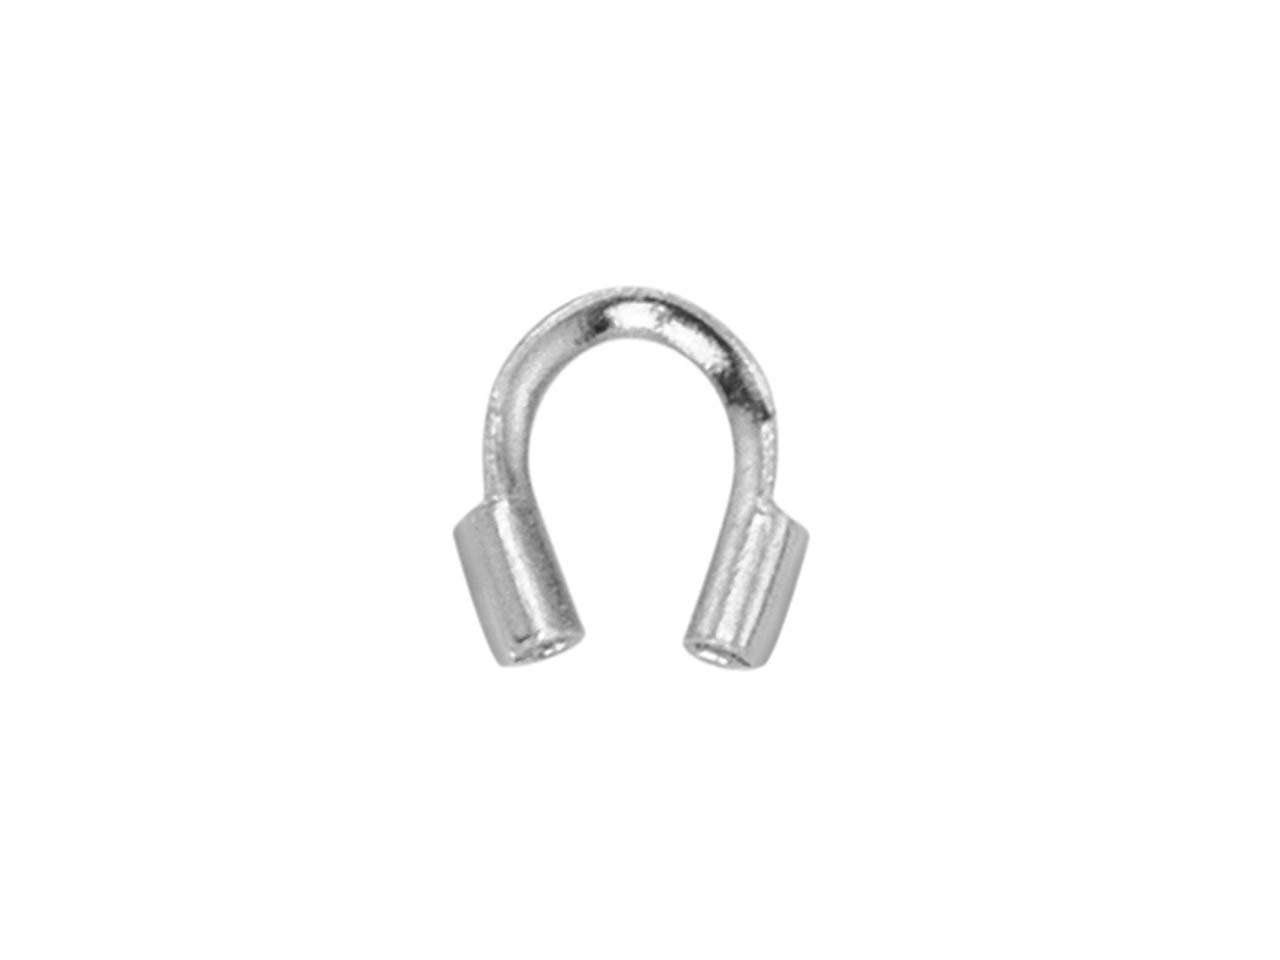 Beadalon Wire Guardians Silver     Plated, 0.56mm Hole X 4.57mm       Length, Pack of 20